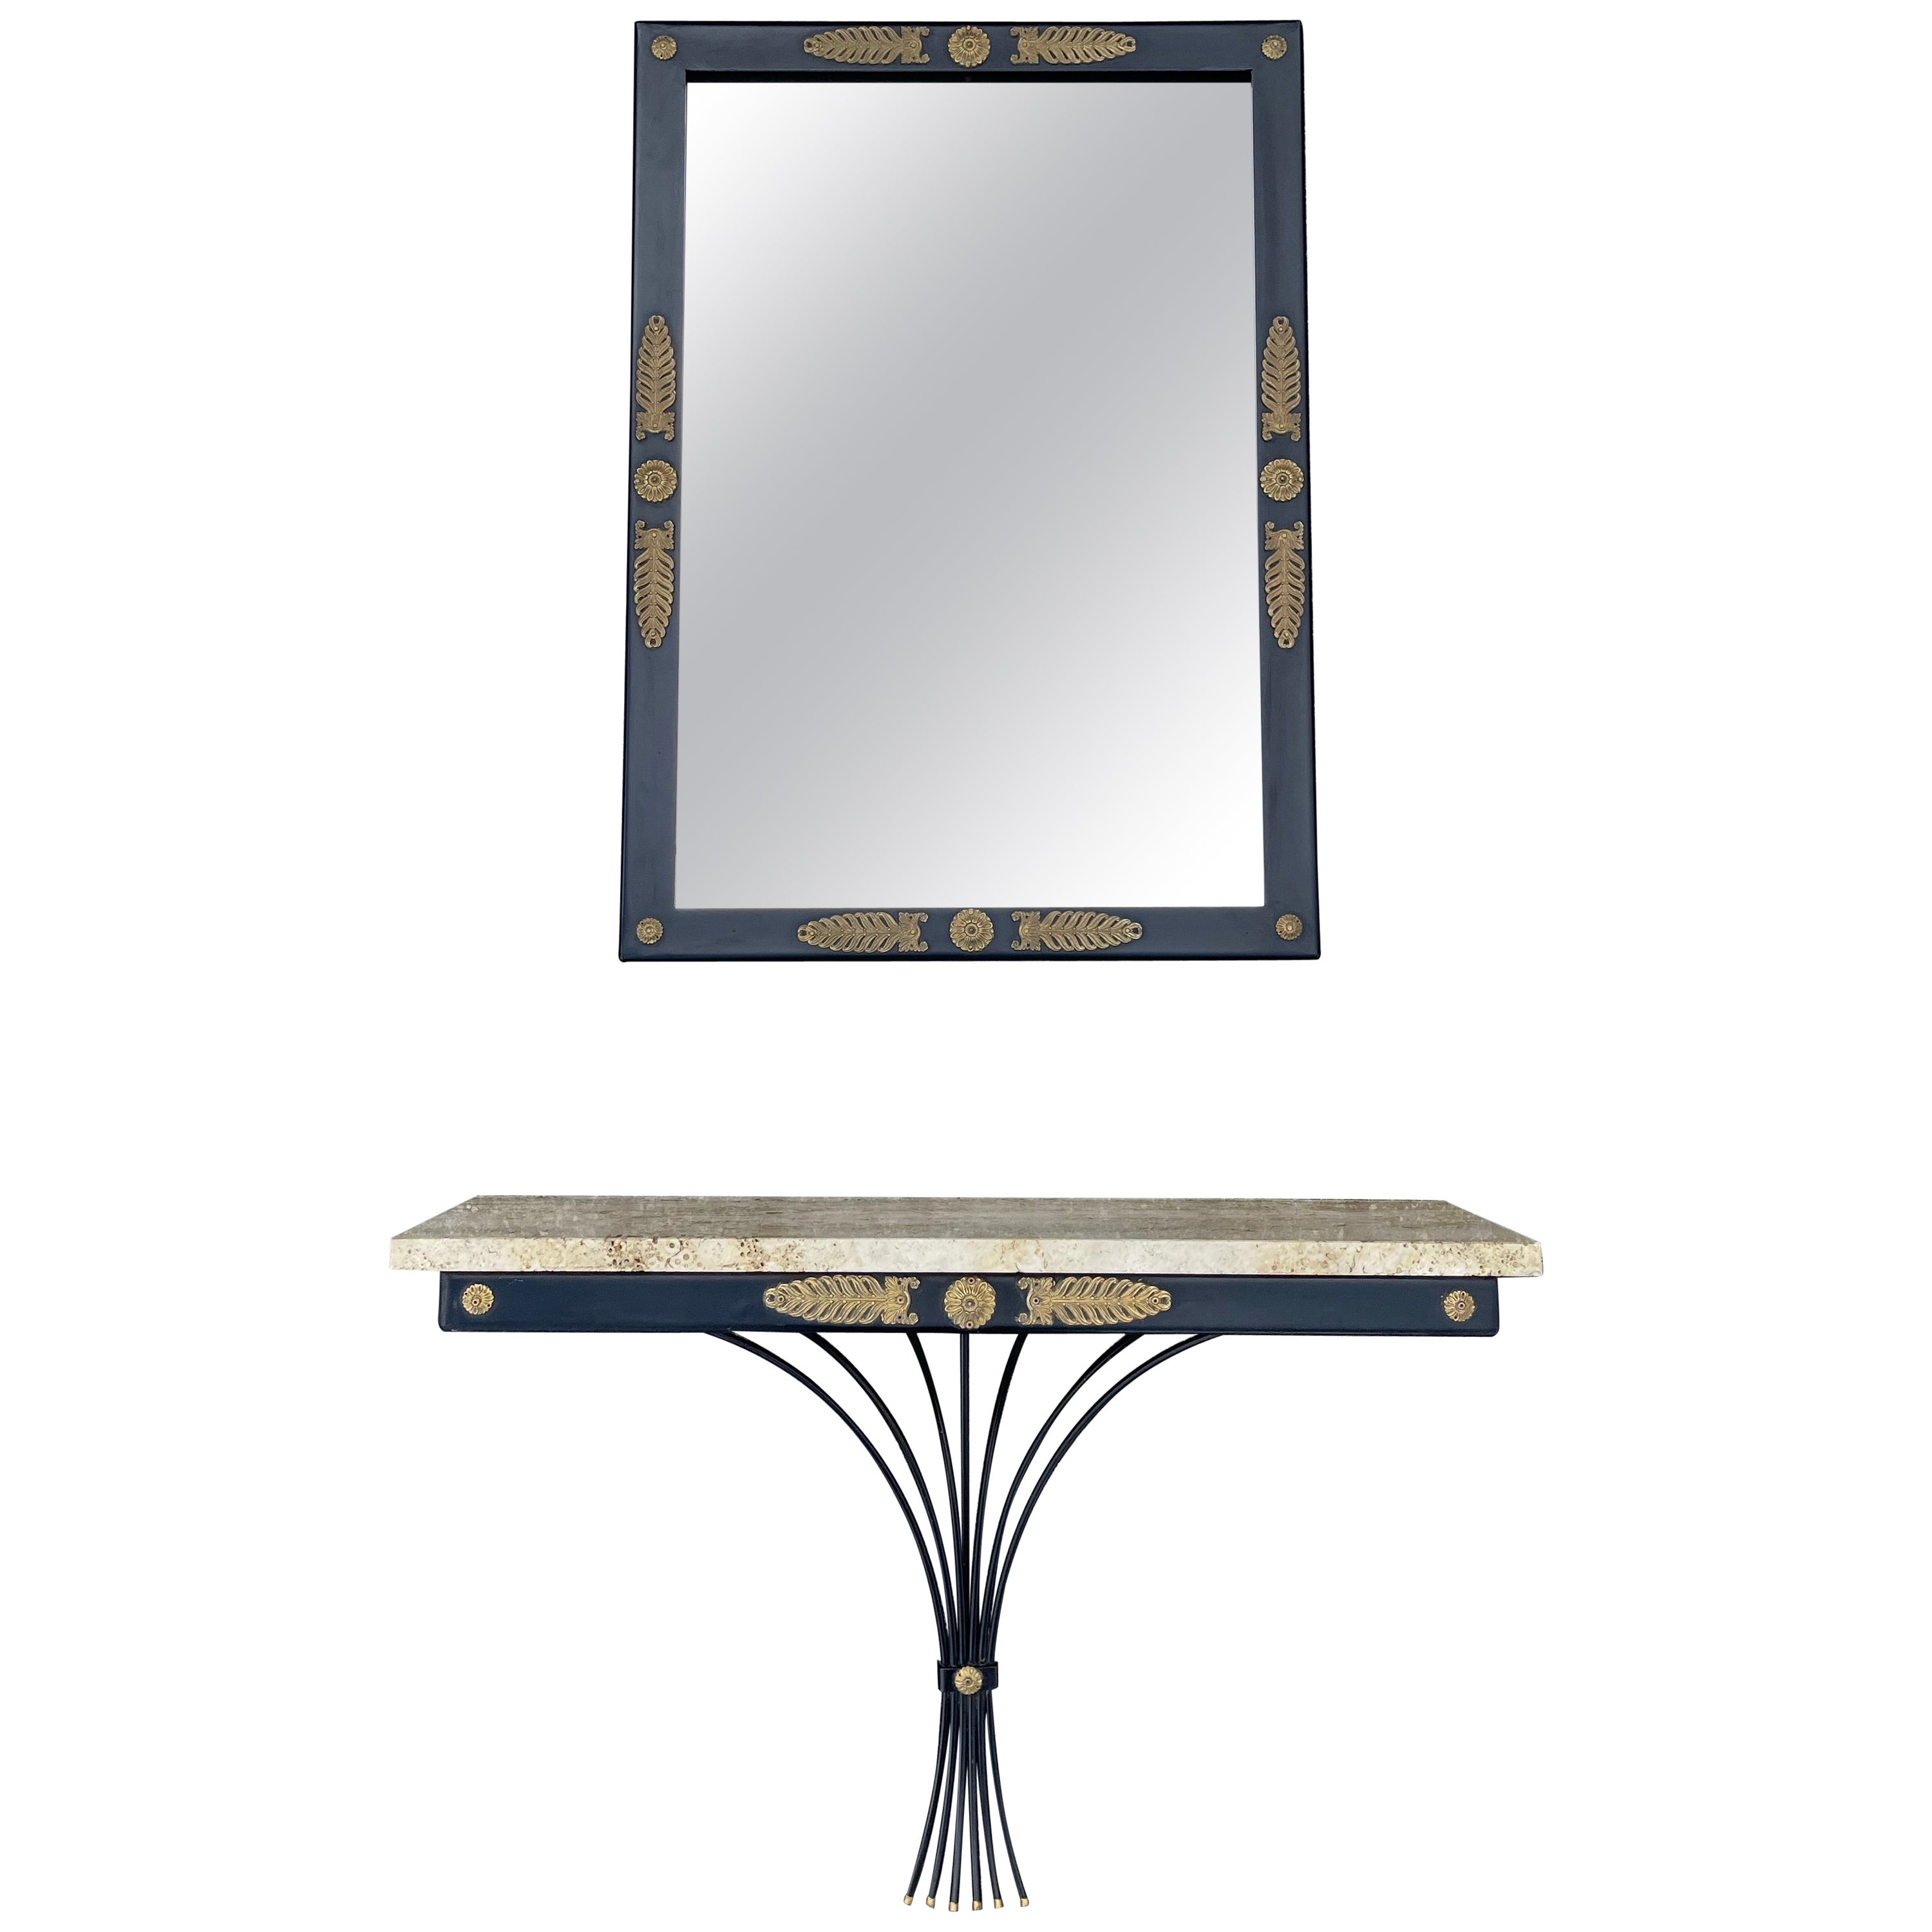 Midcentury Floating Console Table with Travertine Marble Top and Matching Mirror